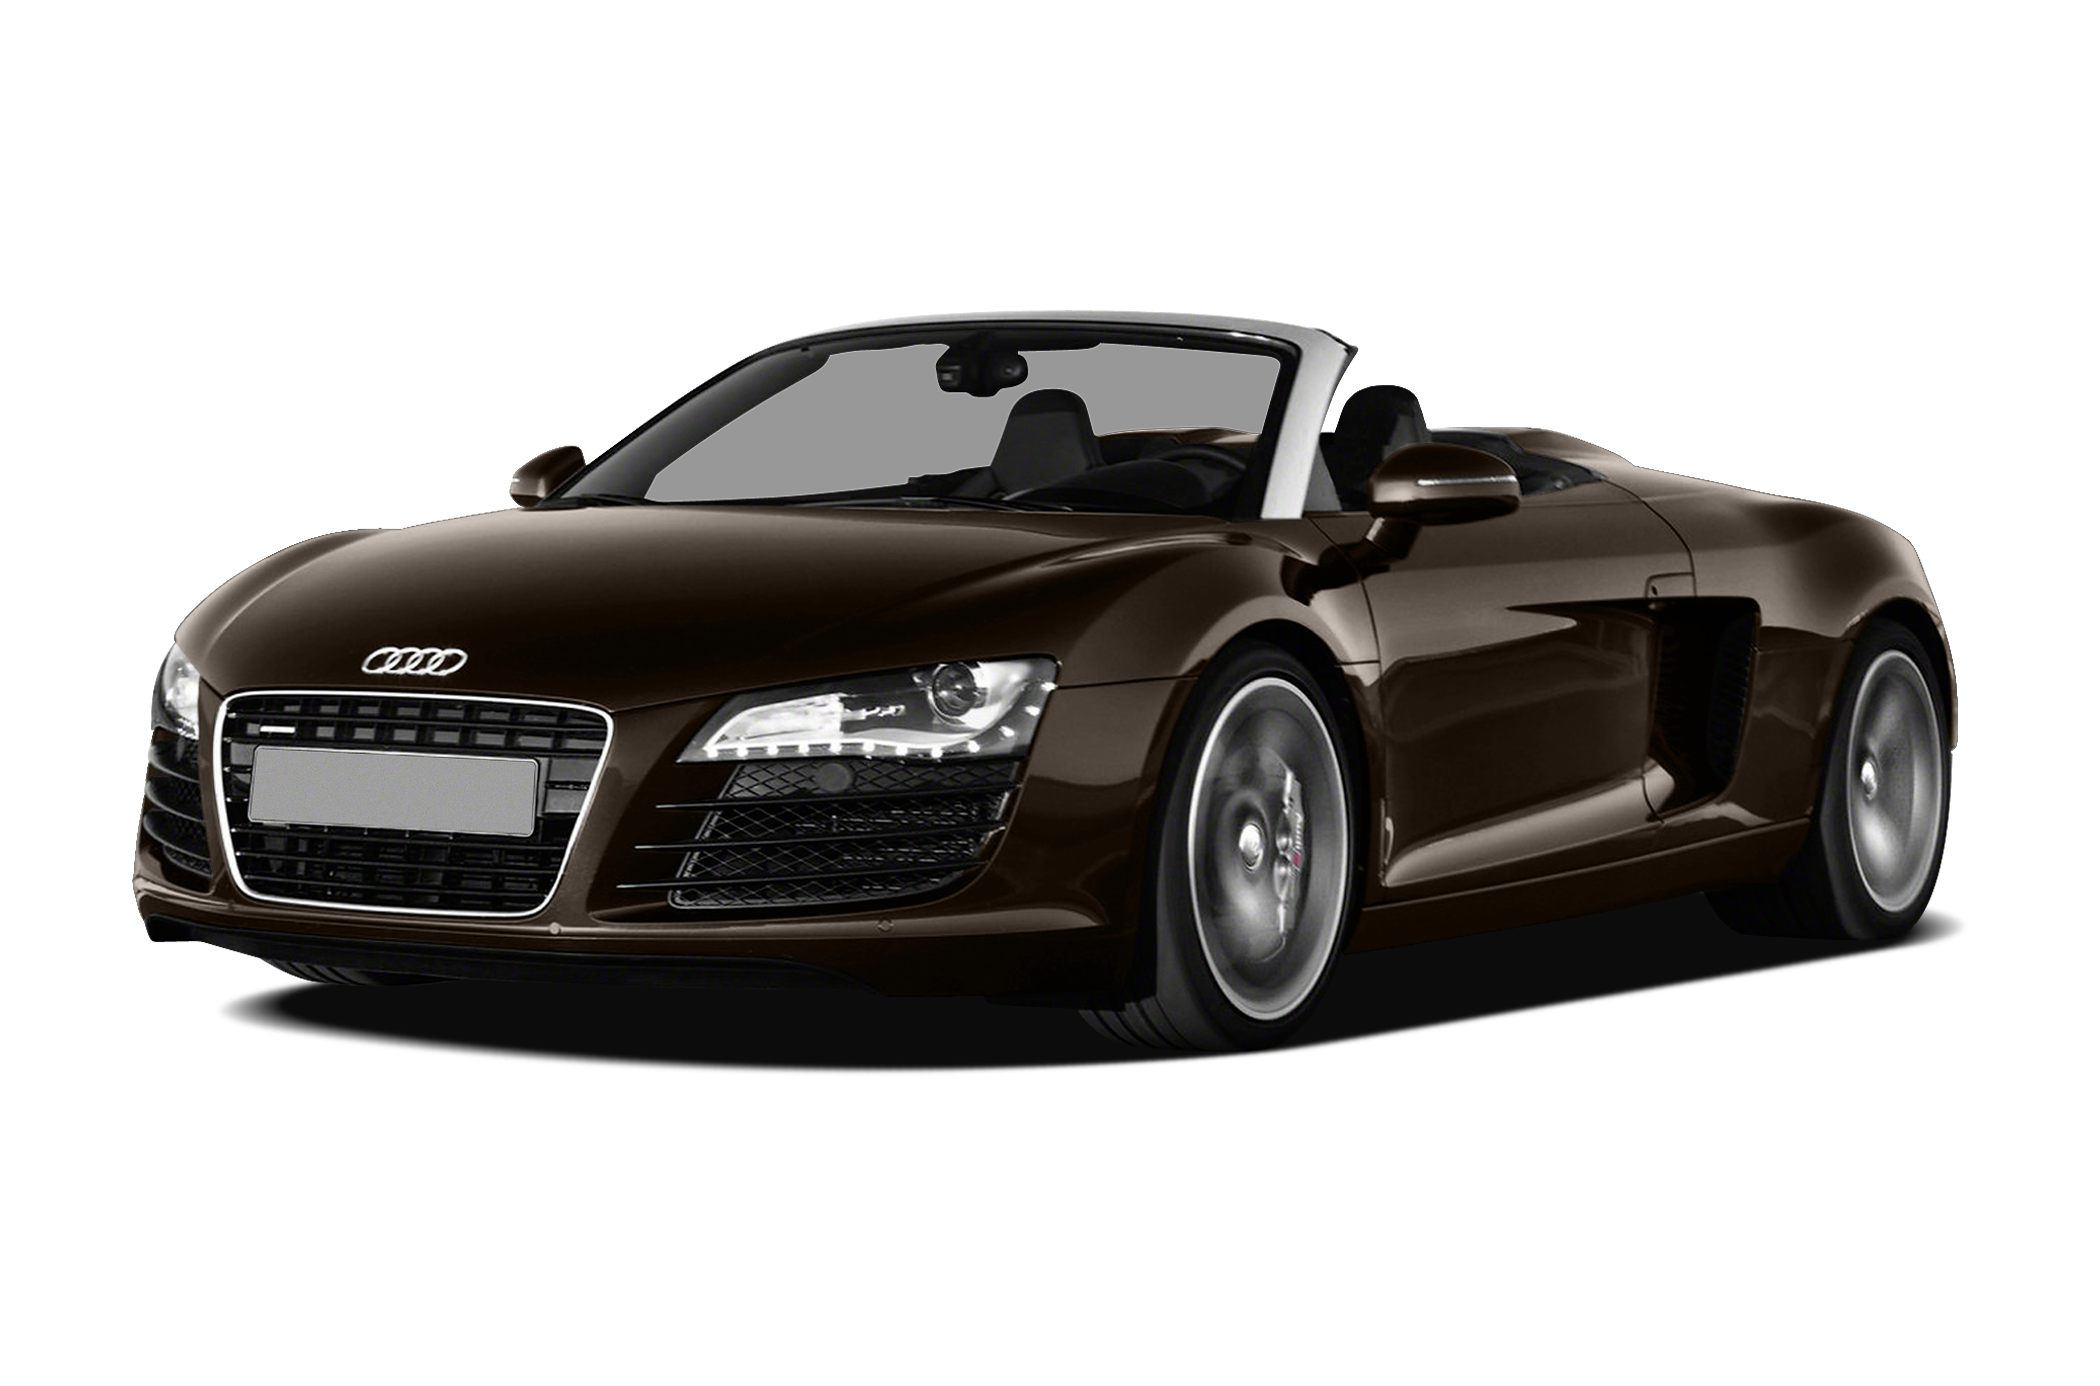 2011 Audi R8 4 2 2dr All wheel Drive quattro Spyder Pricing and Options